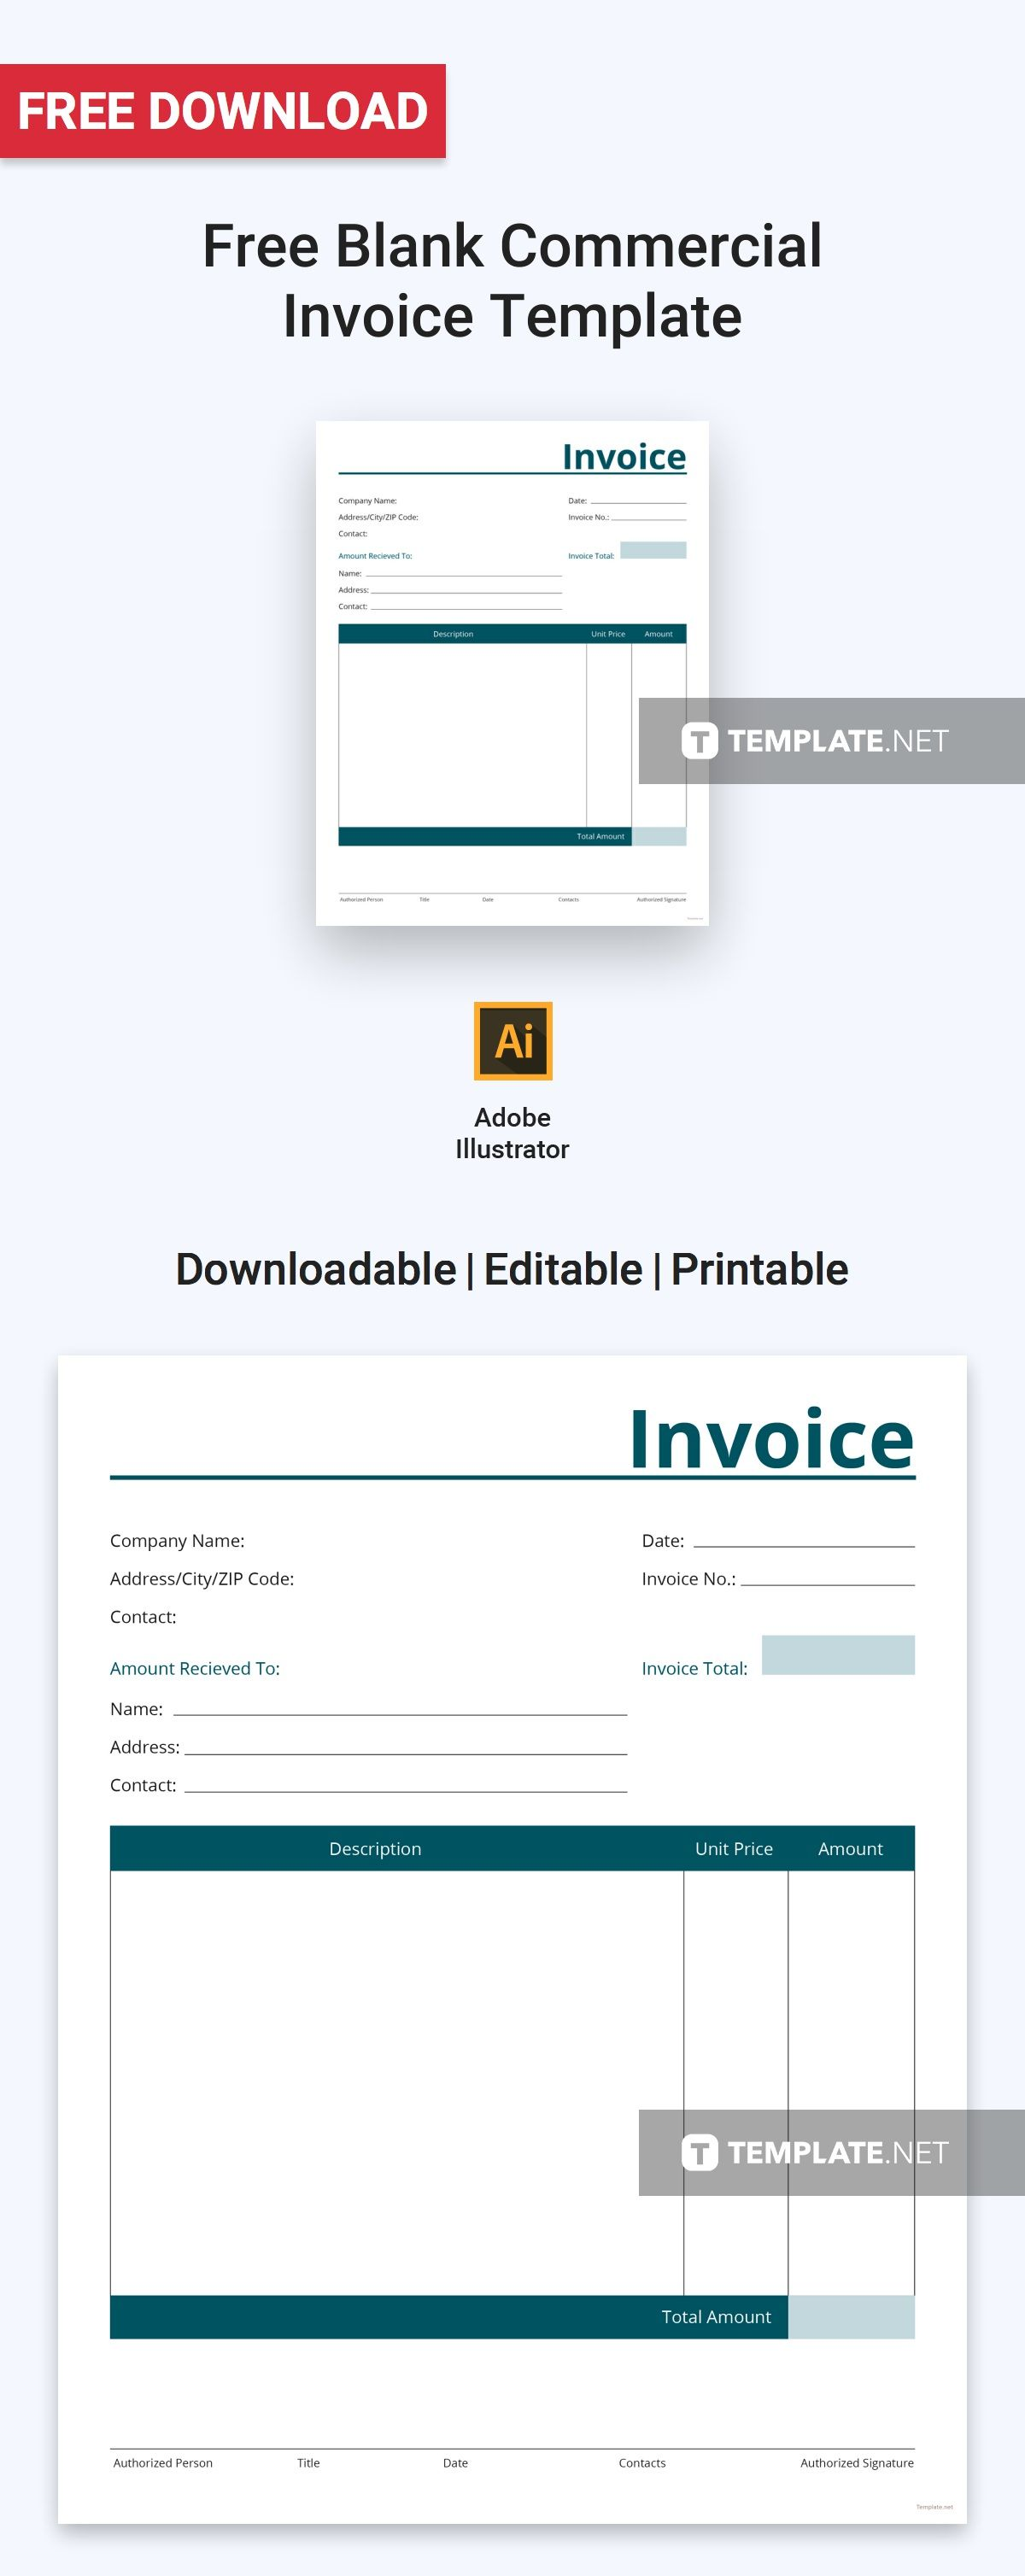 Blank Commercial Invoice Template Free Pdf Word Excel Psd Apple Pages Google Docs Google Sheets Illustrator Apple Numbers Invoice Template Invoice Design Template Invoice Template Word